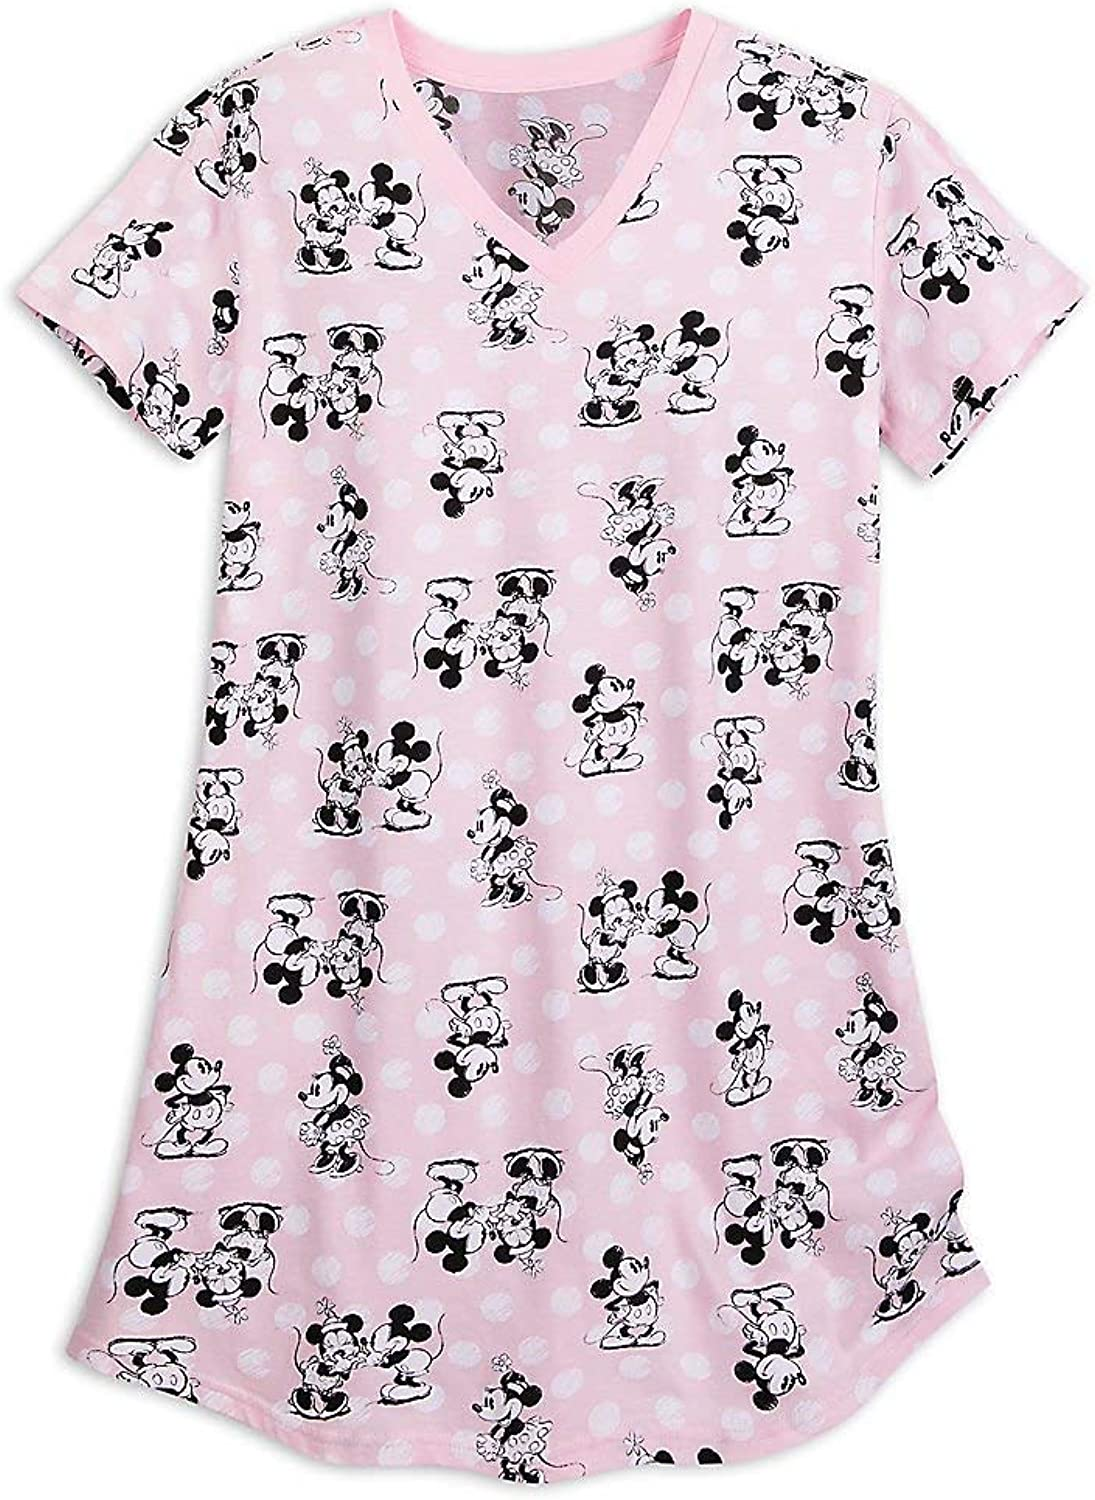 Disney Mickey and Minnie Mouse Nightshirt for Women Pink